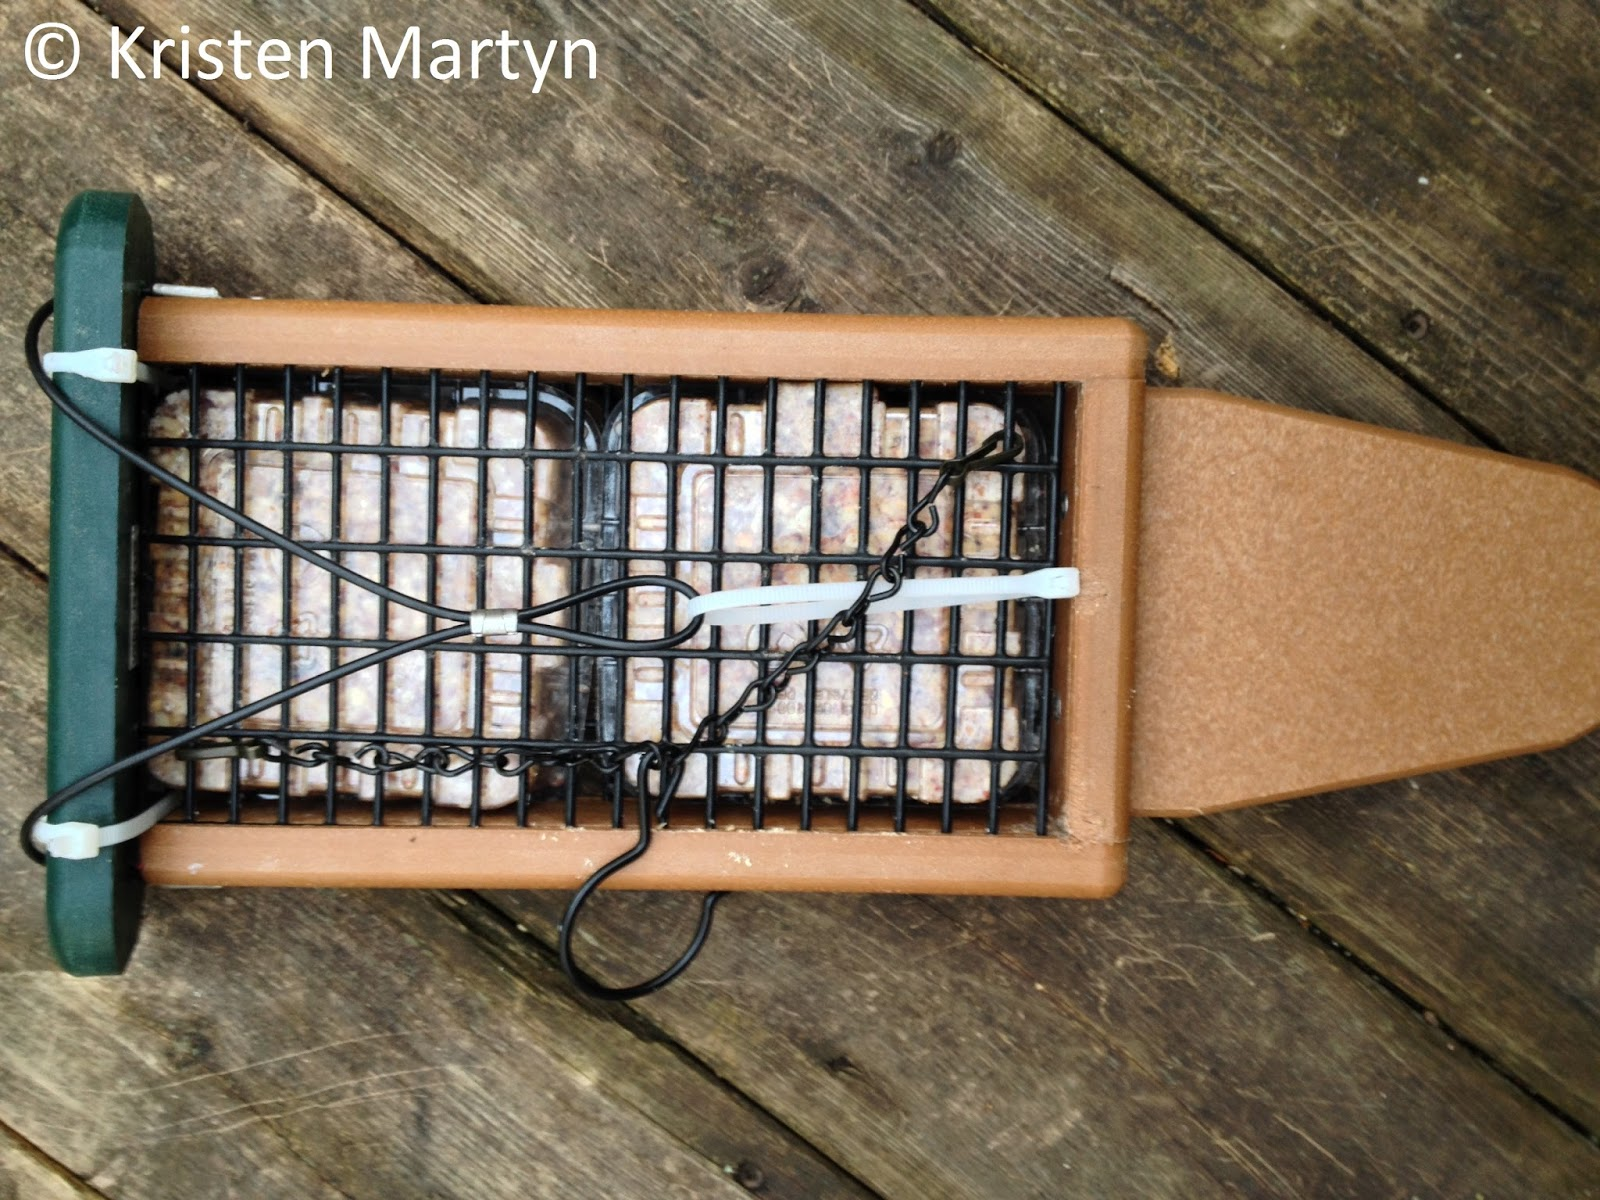 how to keep cowbirds away from feeders